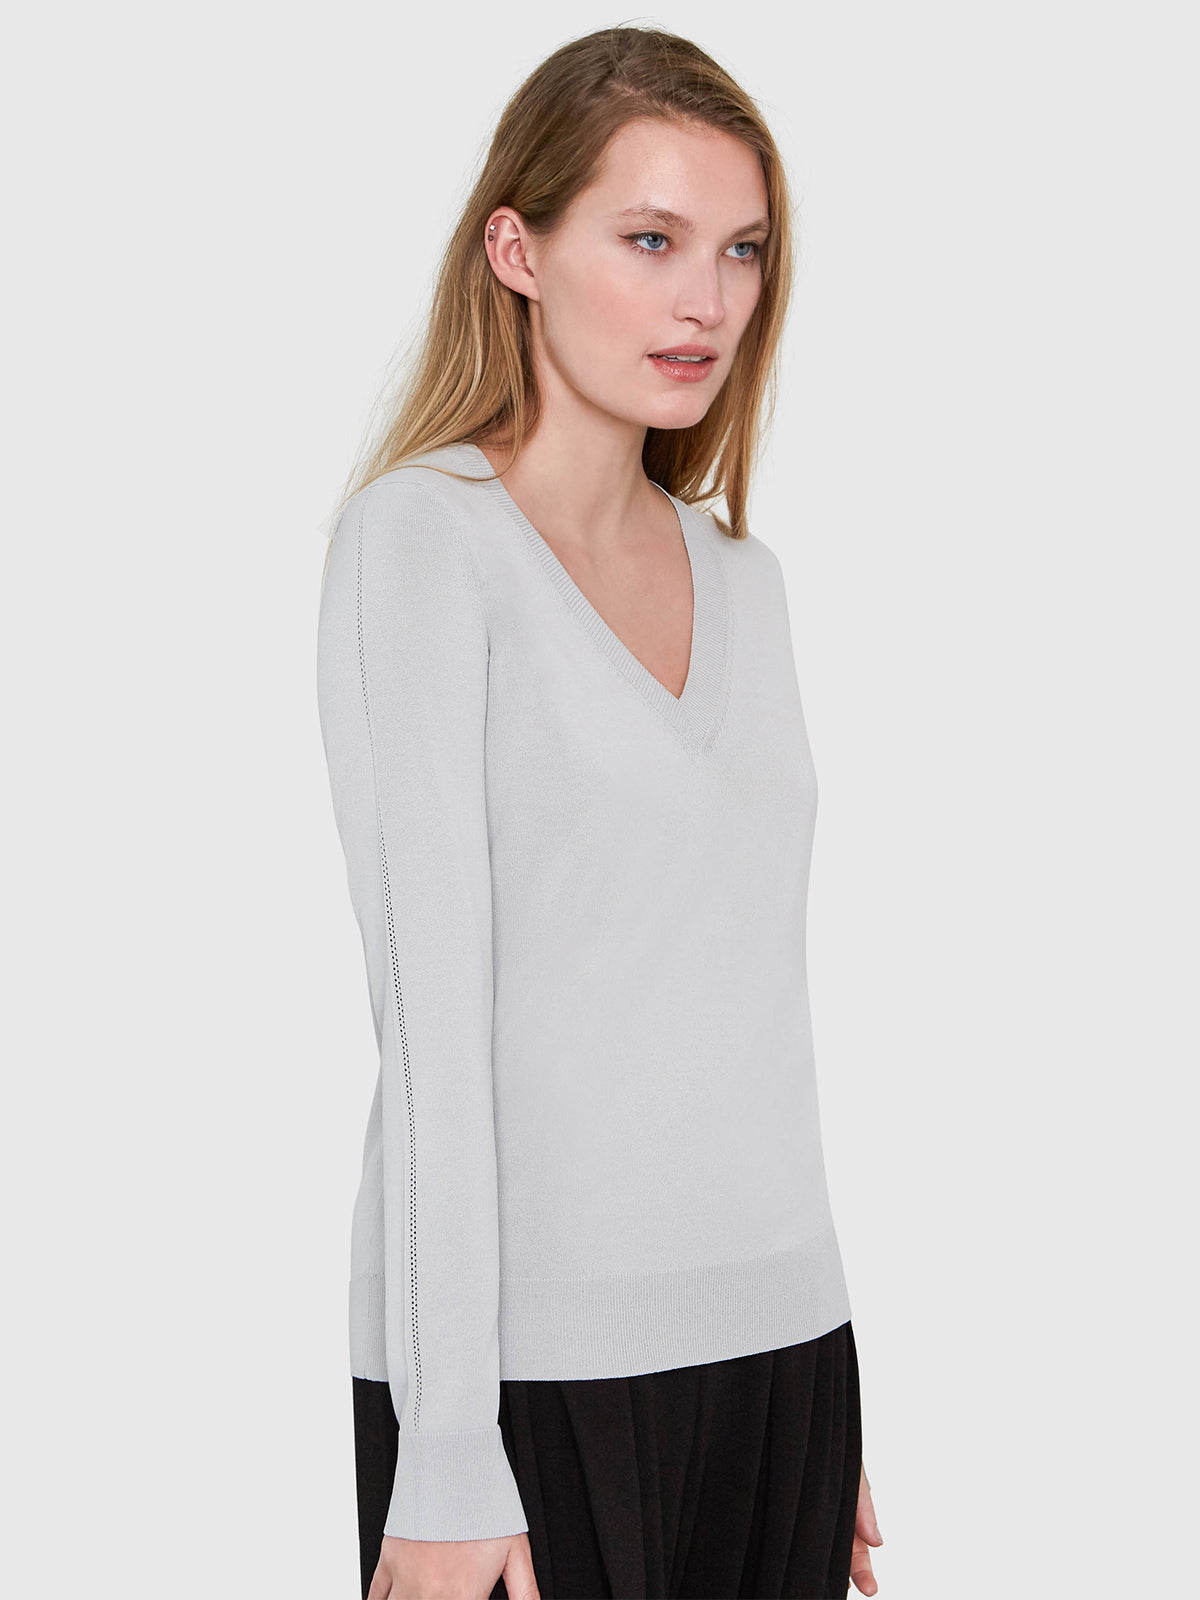 Livia Long Sleeve V-Neck Sweater | Smoke Livia Long Sleeve V-Neck Sweater | Smoke